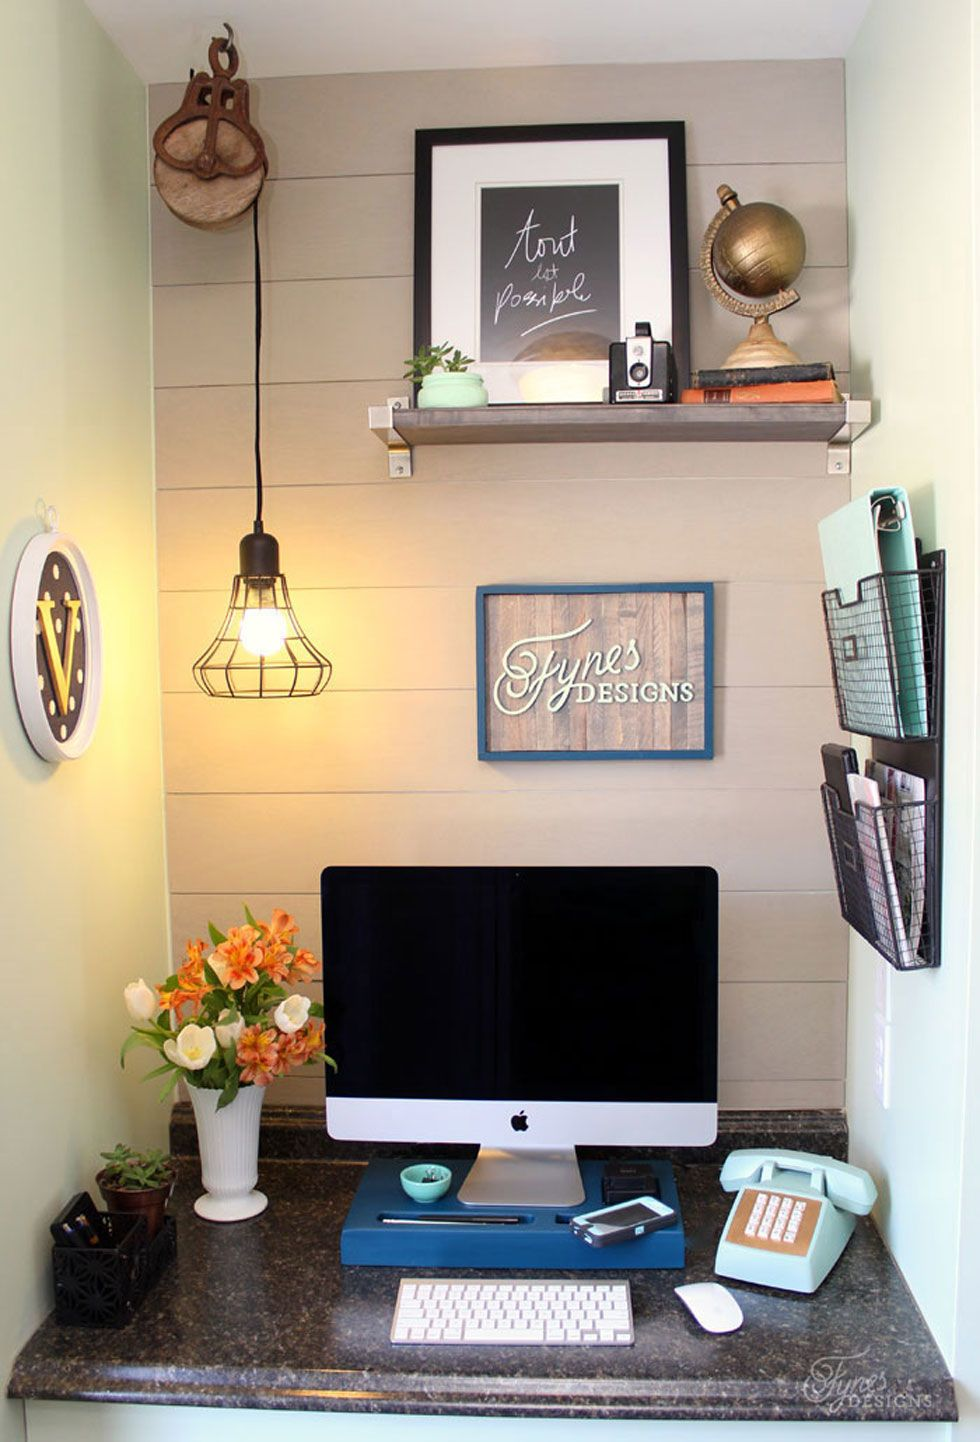 Merveilleux Fynes Designs Home Office Makeover   Home Office Decorating Ideas